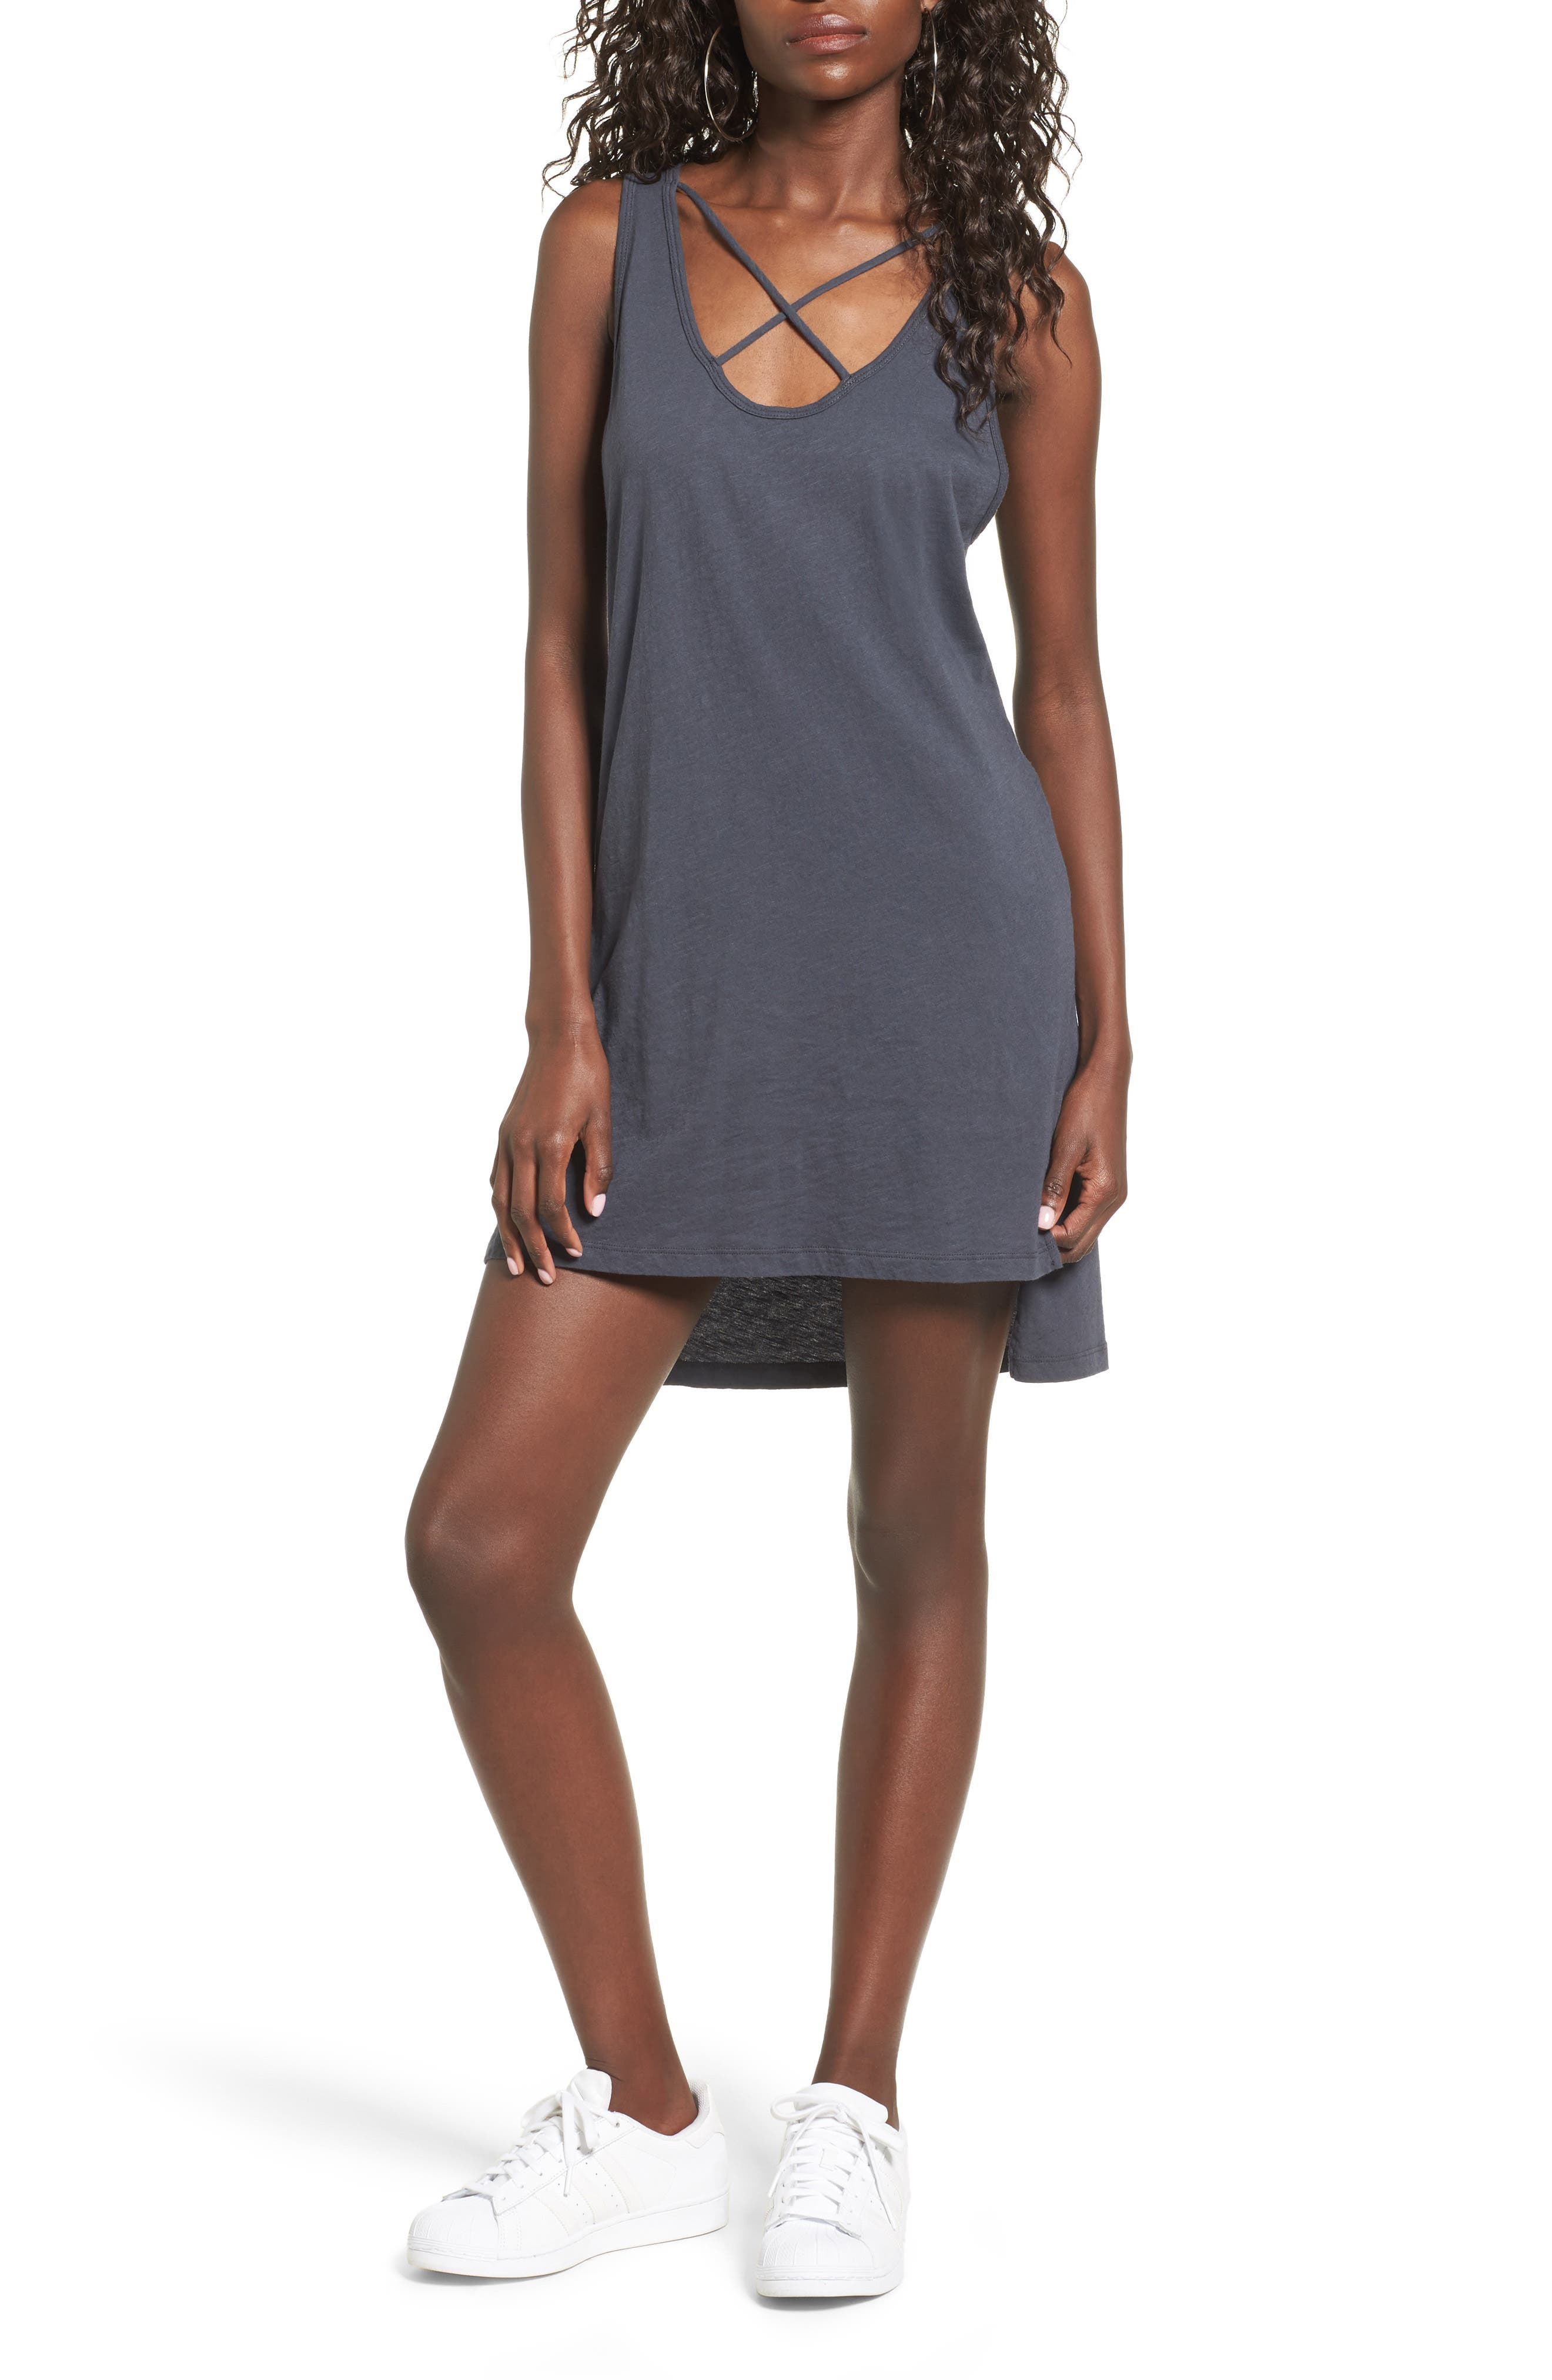 Alternate Image 1 Selected - LNA Cross Strap Tank Dress